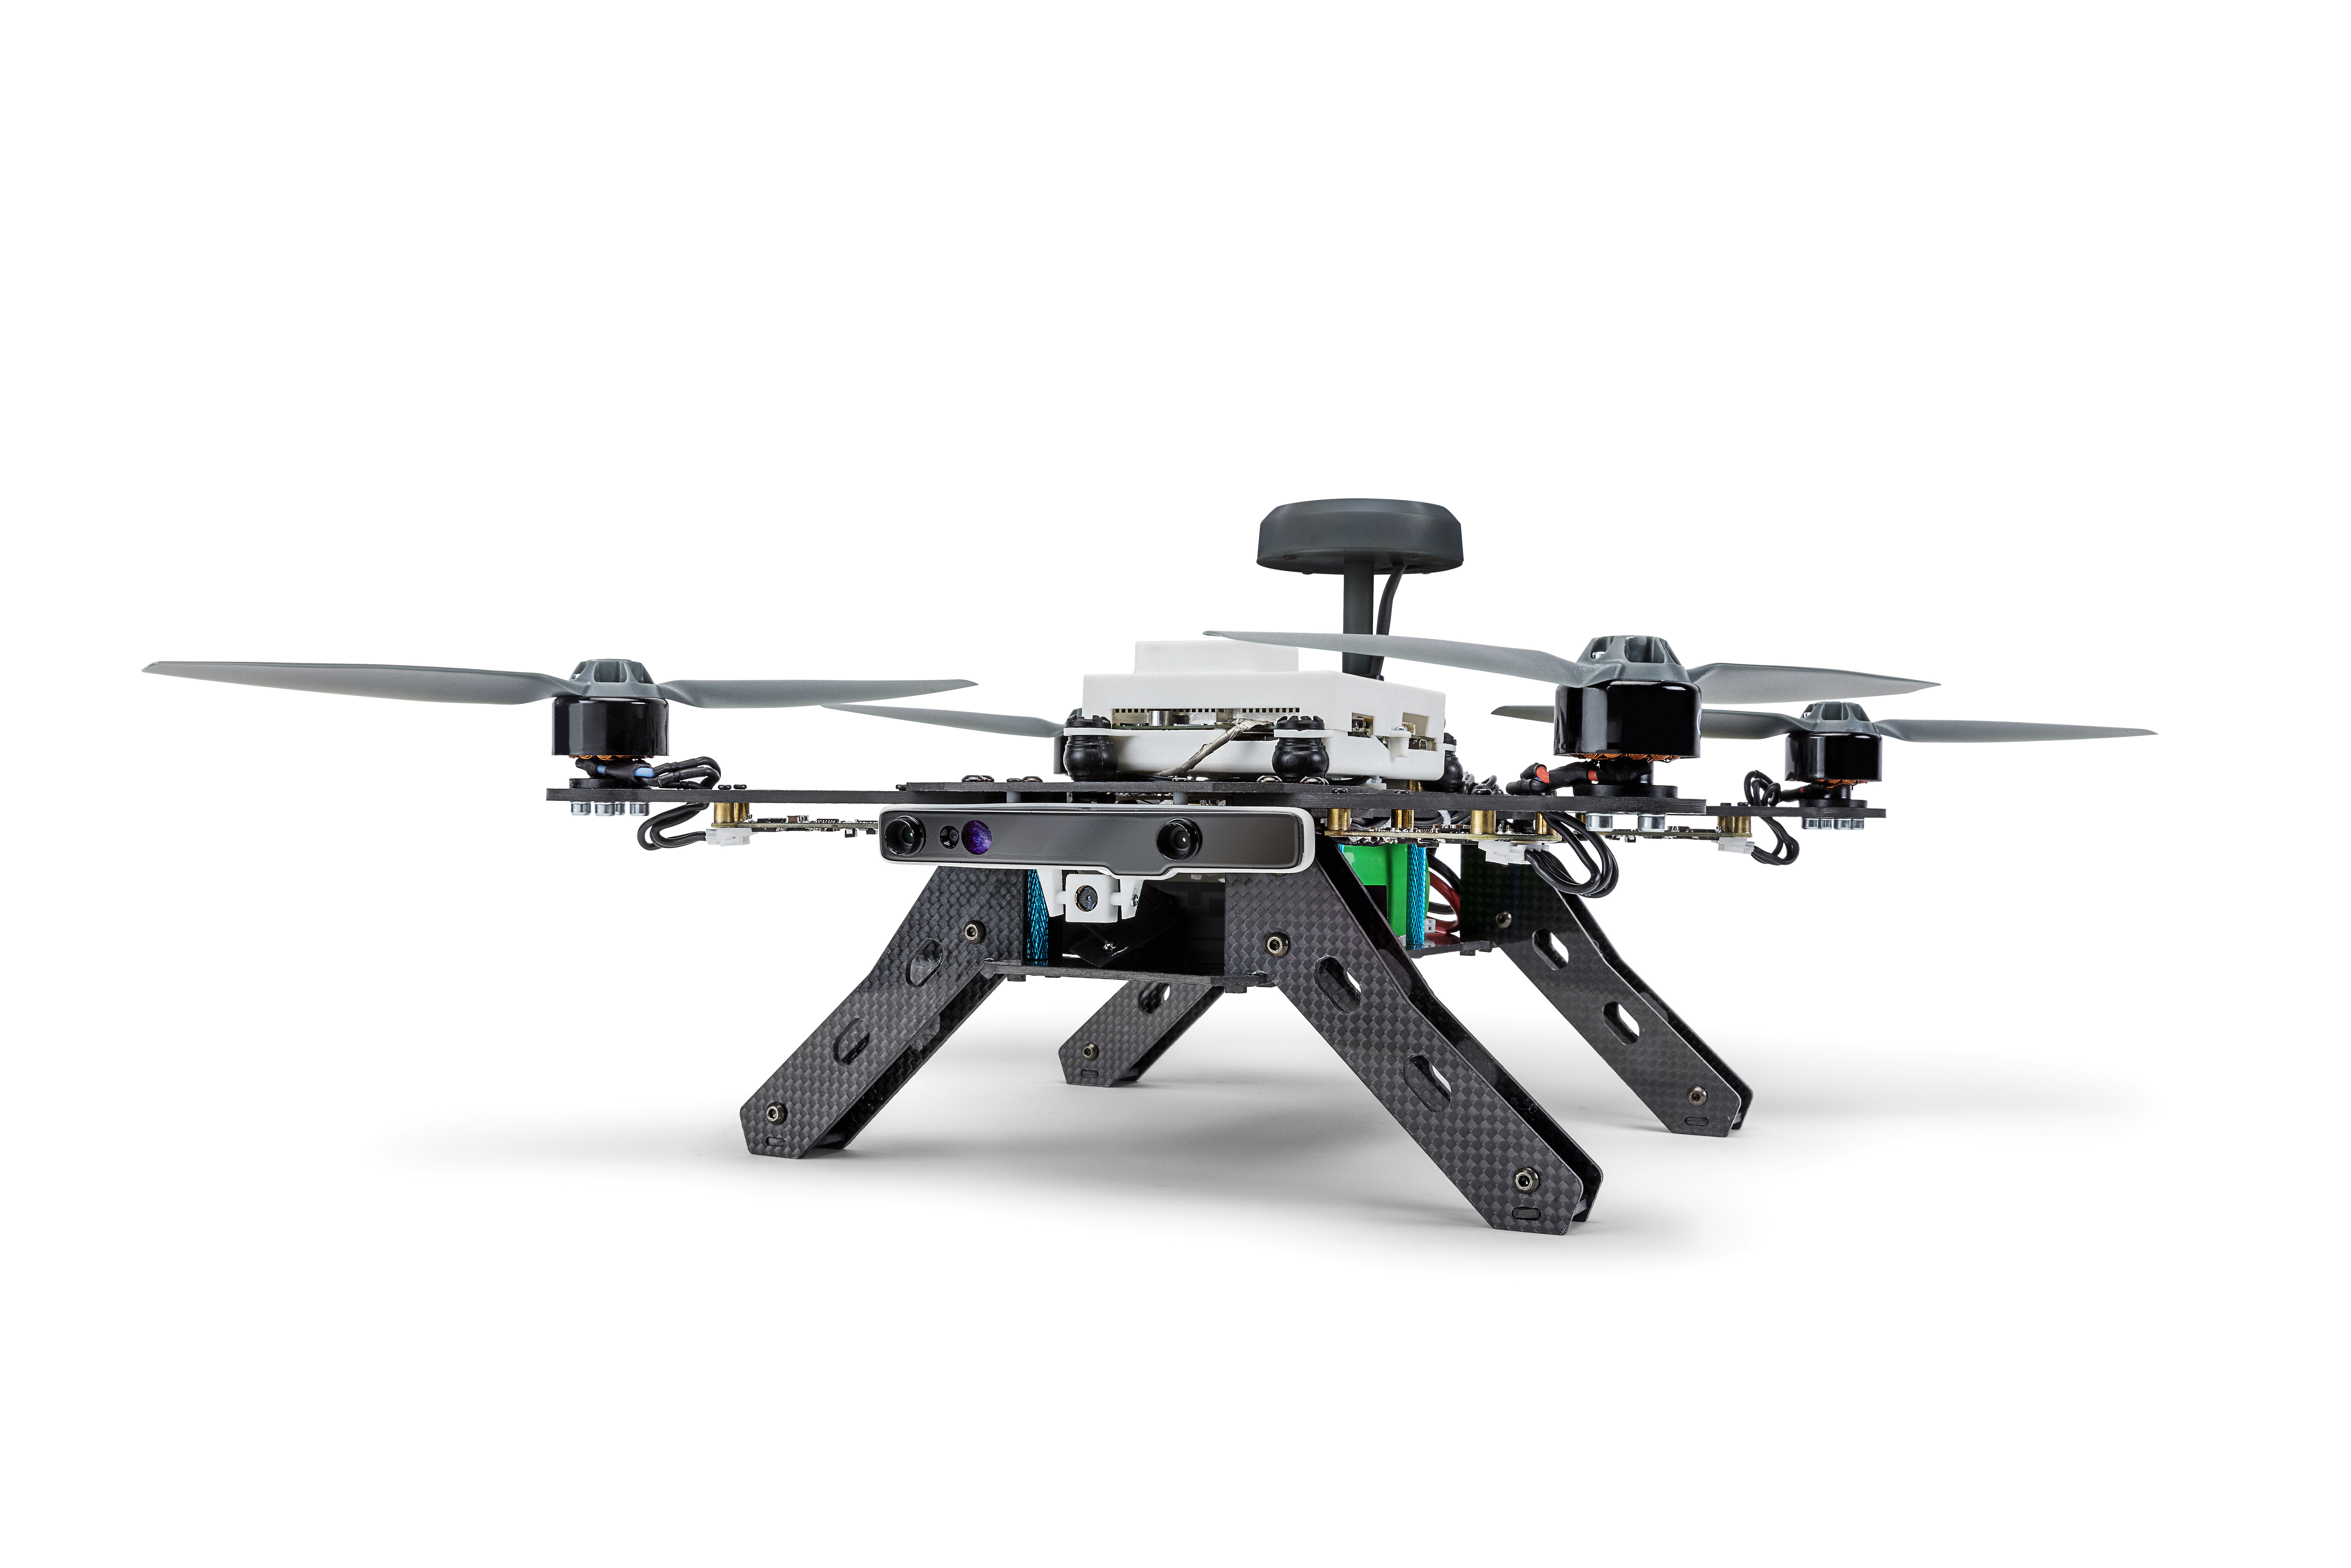 DRONE-ALONE Intel's Aero Drone Offers Mixed Bag of New Tech, Including AirMap